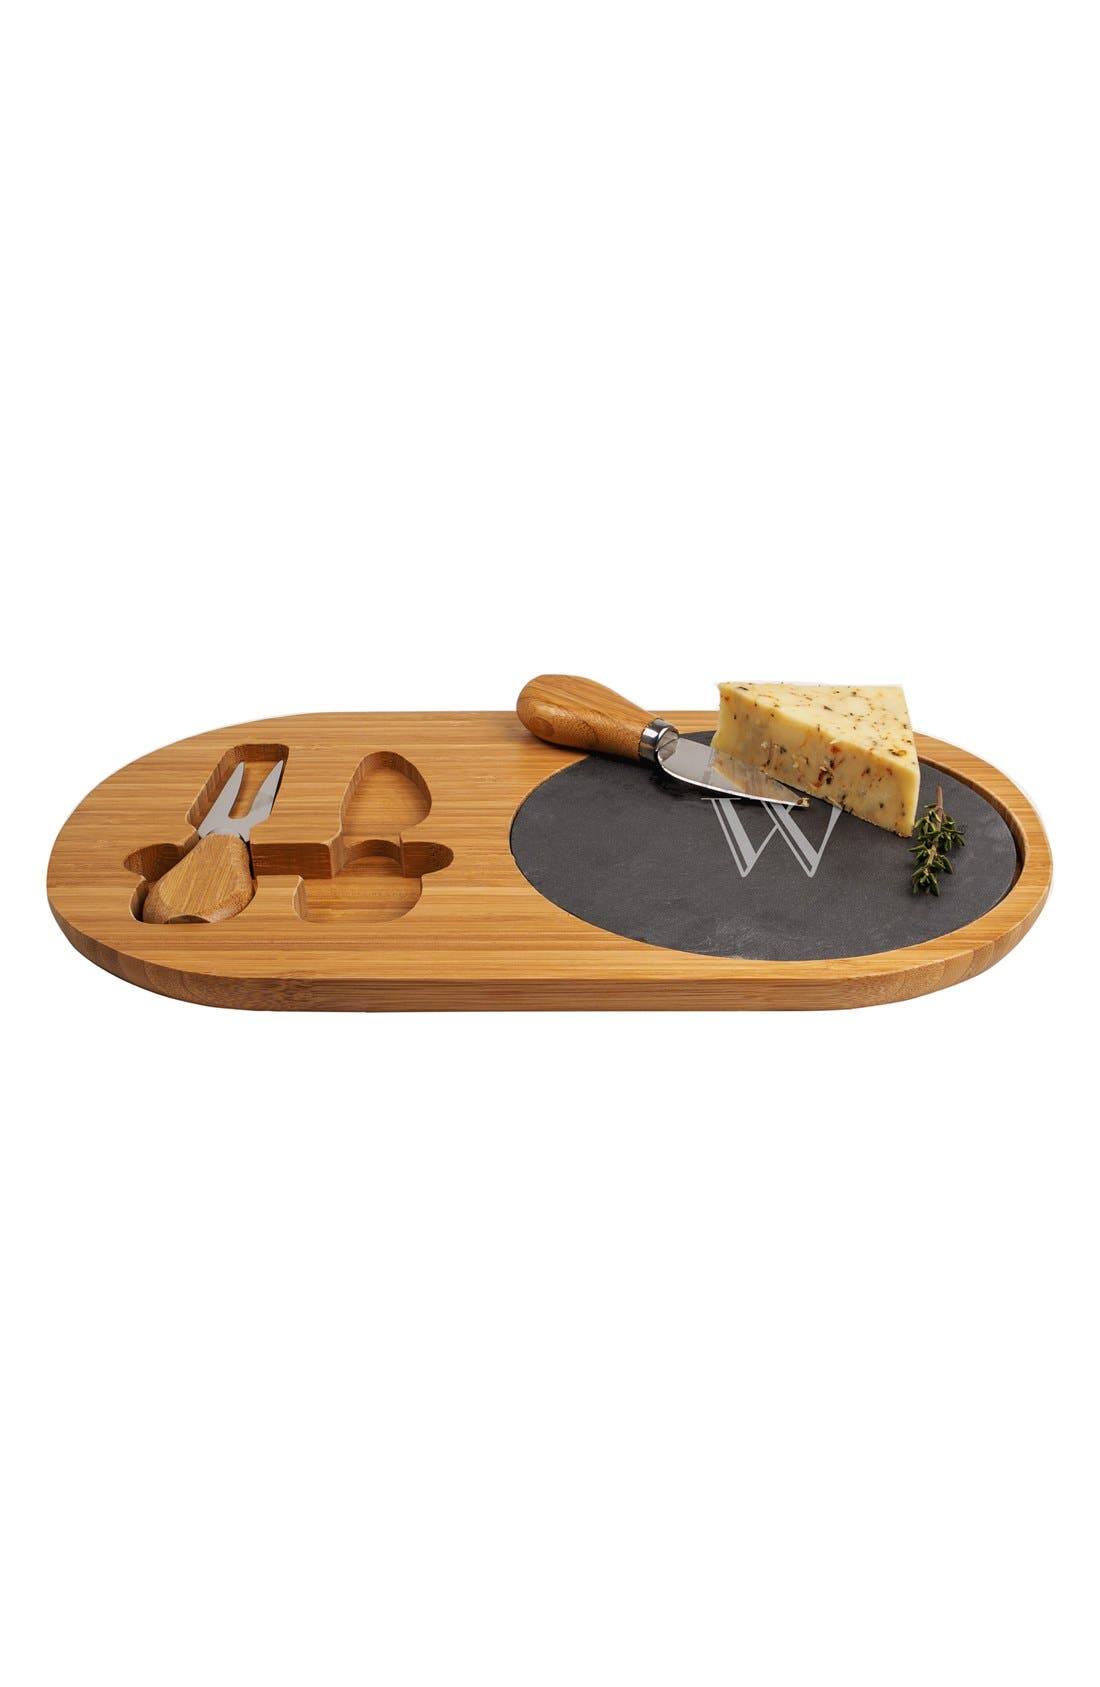 Alternate Image 3  - Cathy's Concepts Monogram Cheese Board & Utensils